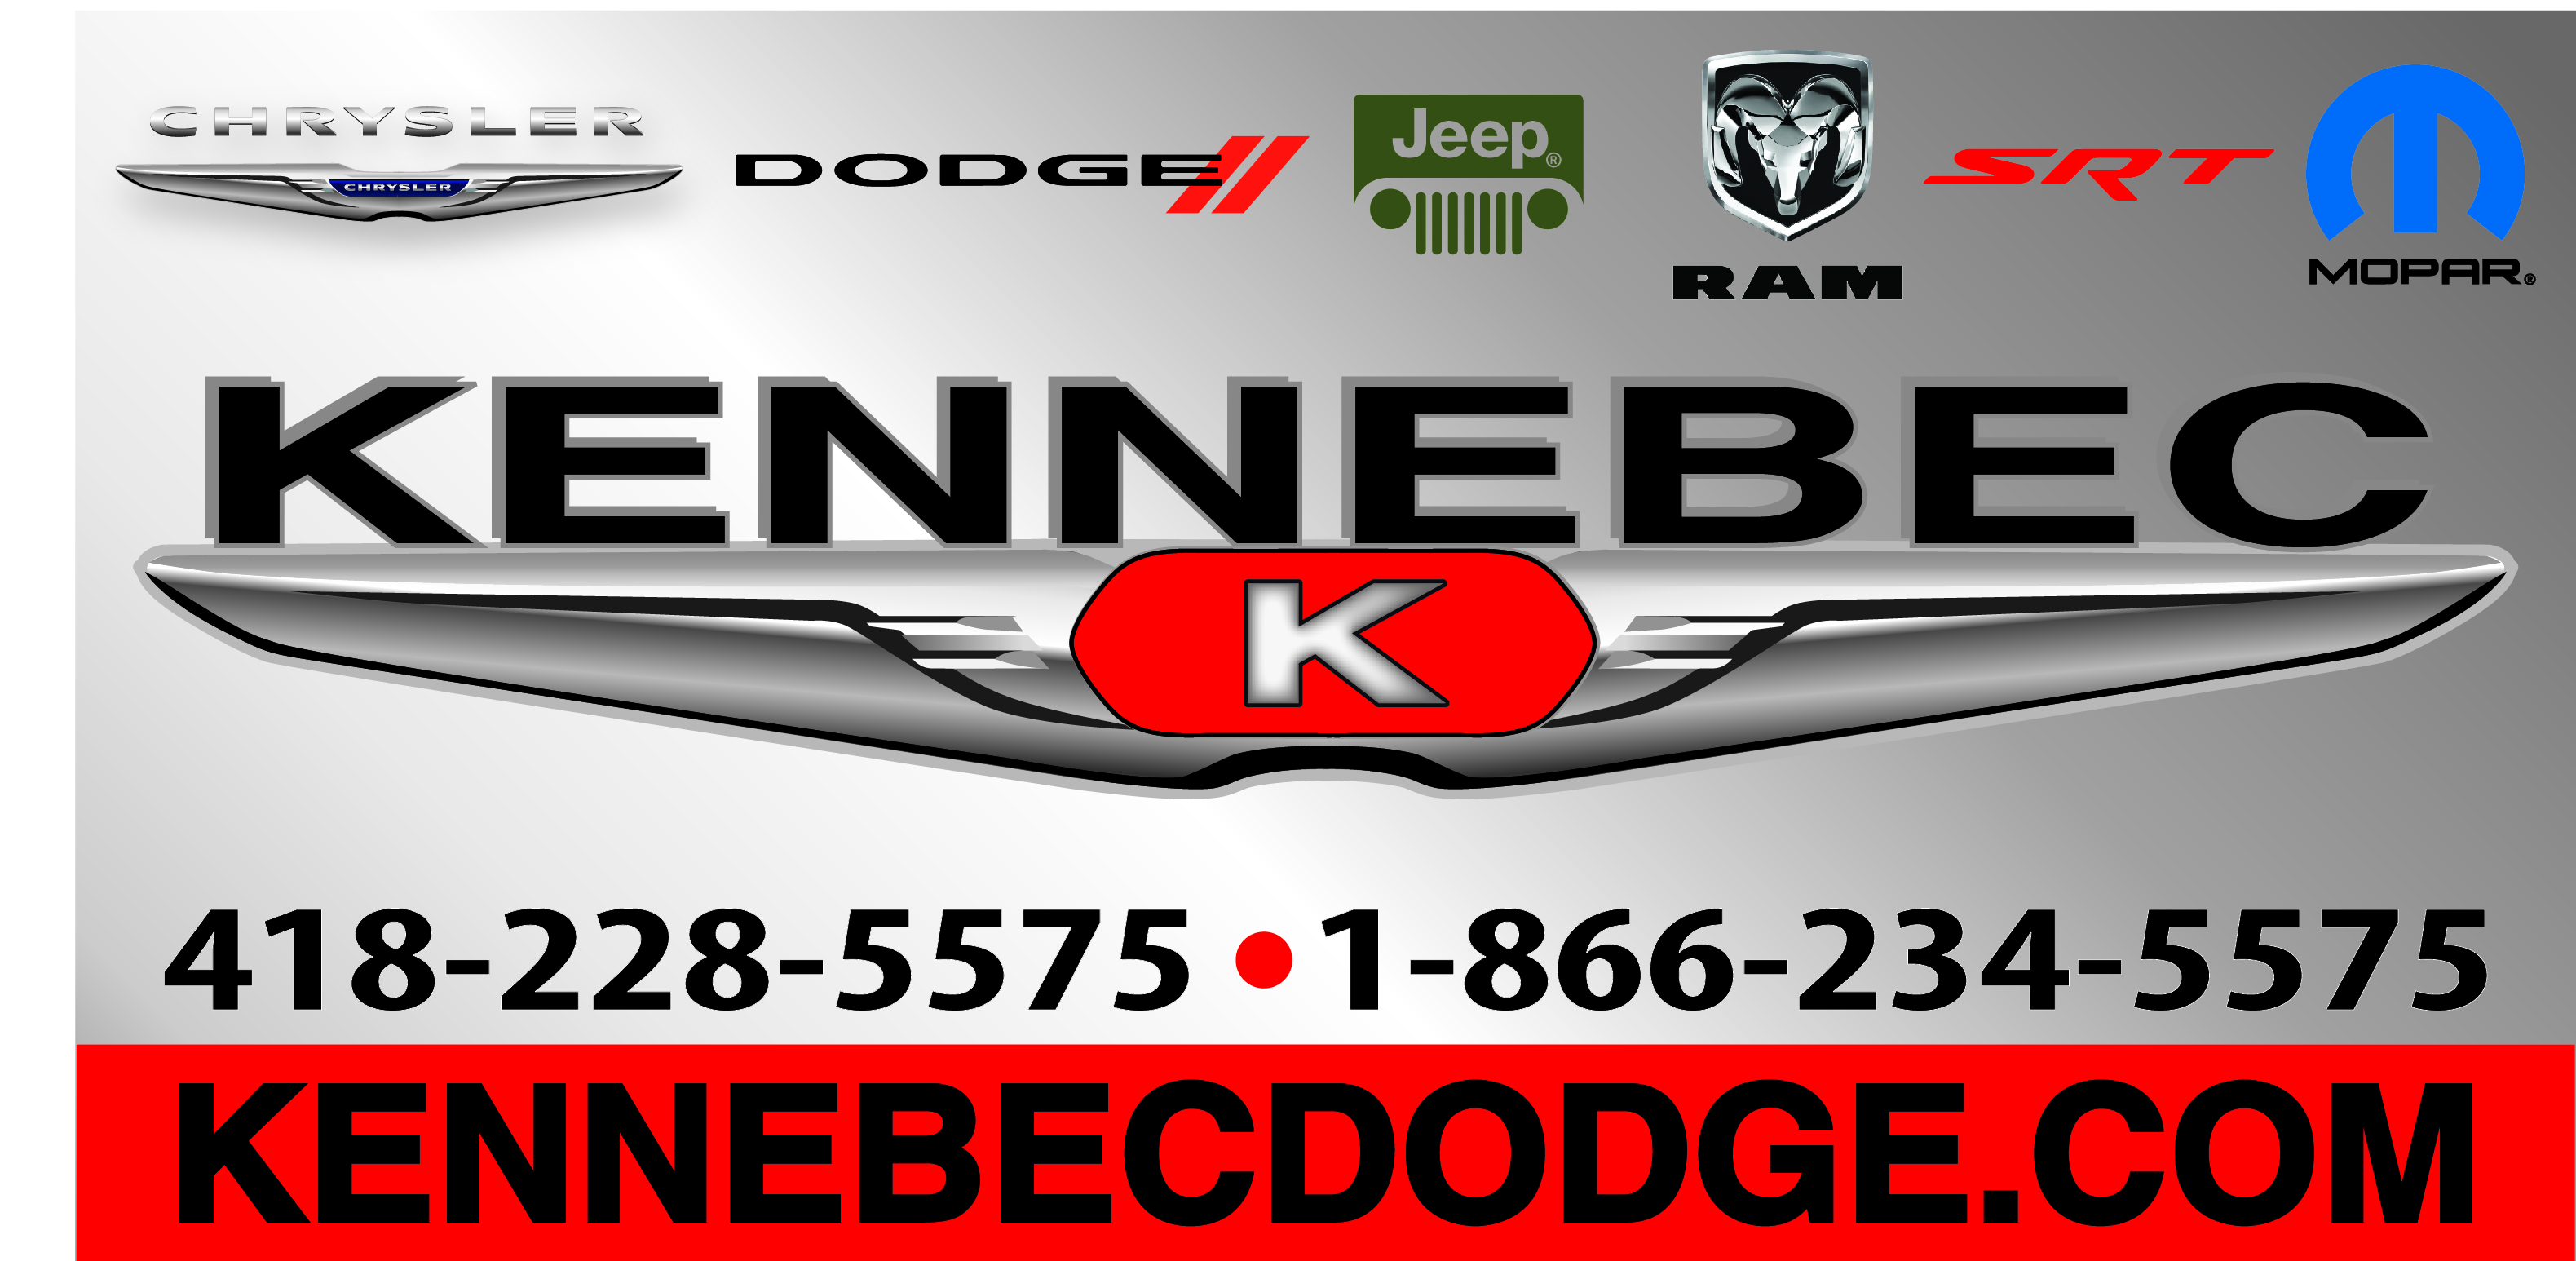 Kennebec Dodge Chrysler Inc